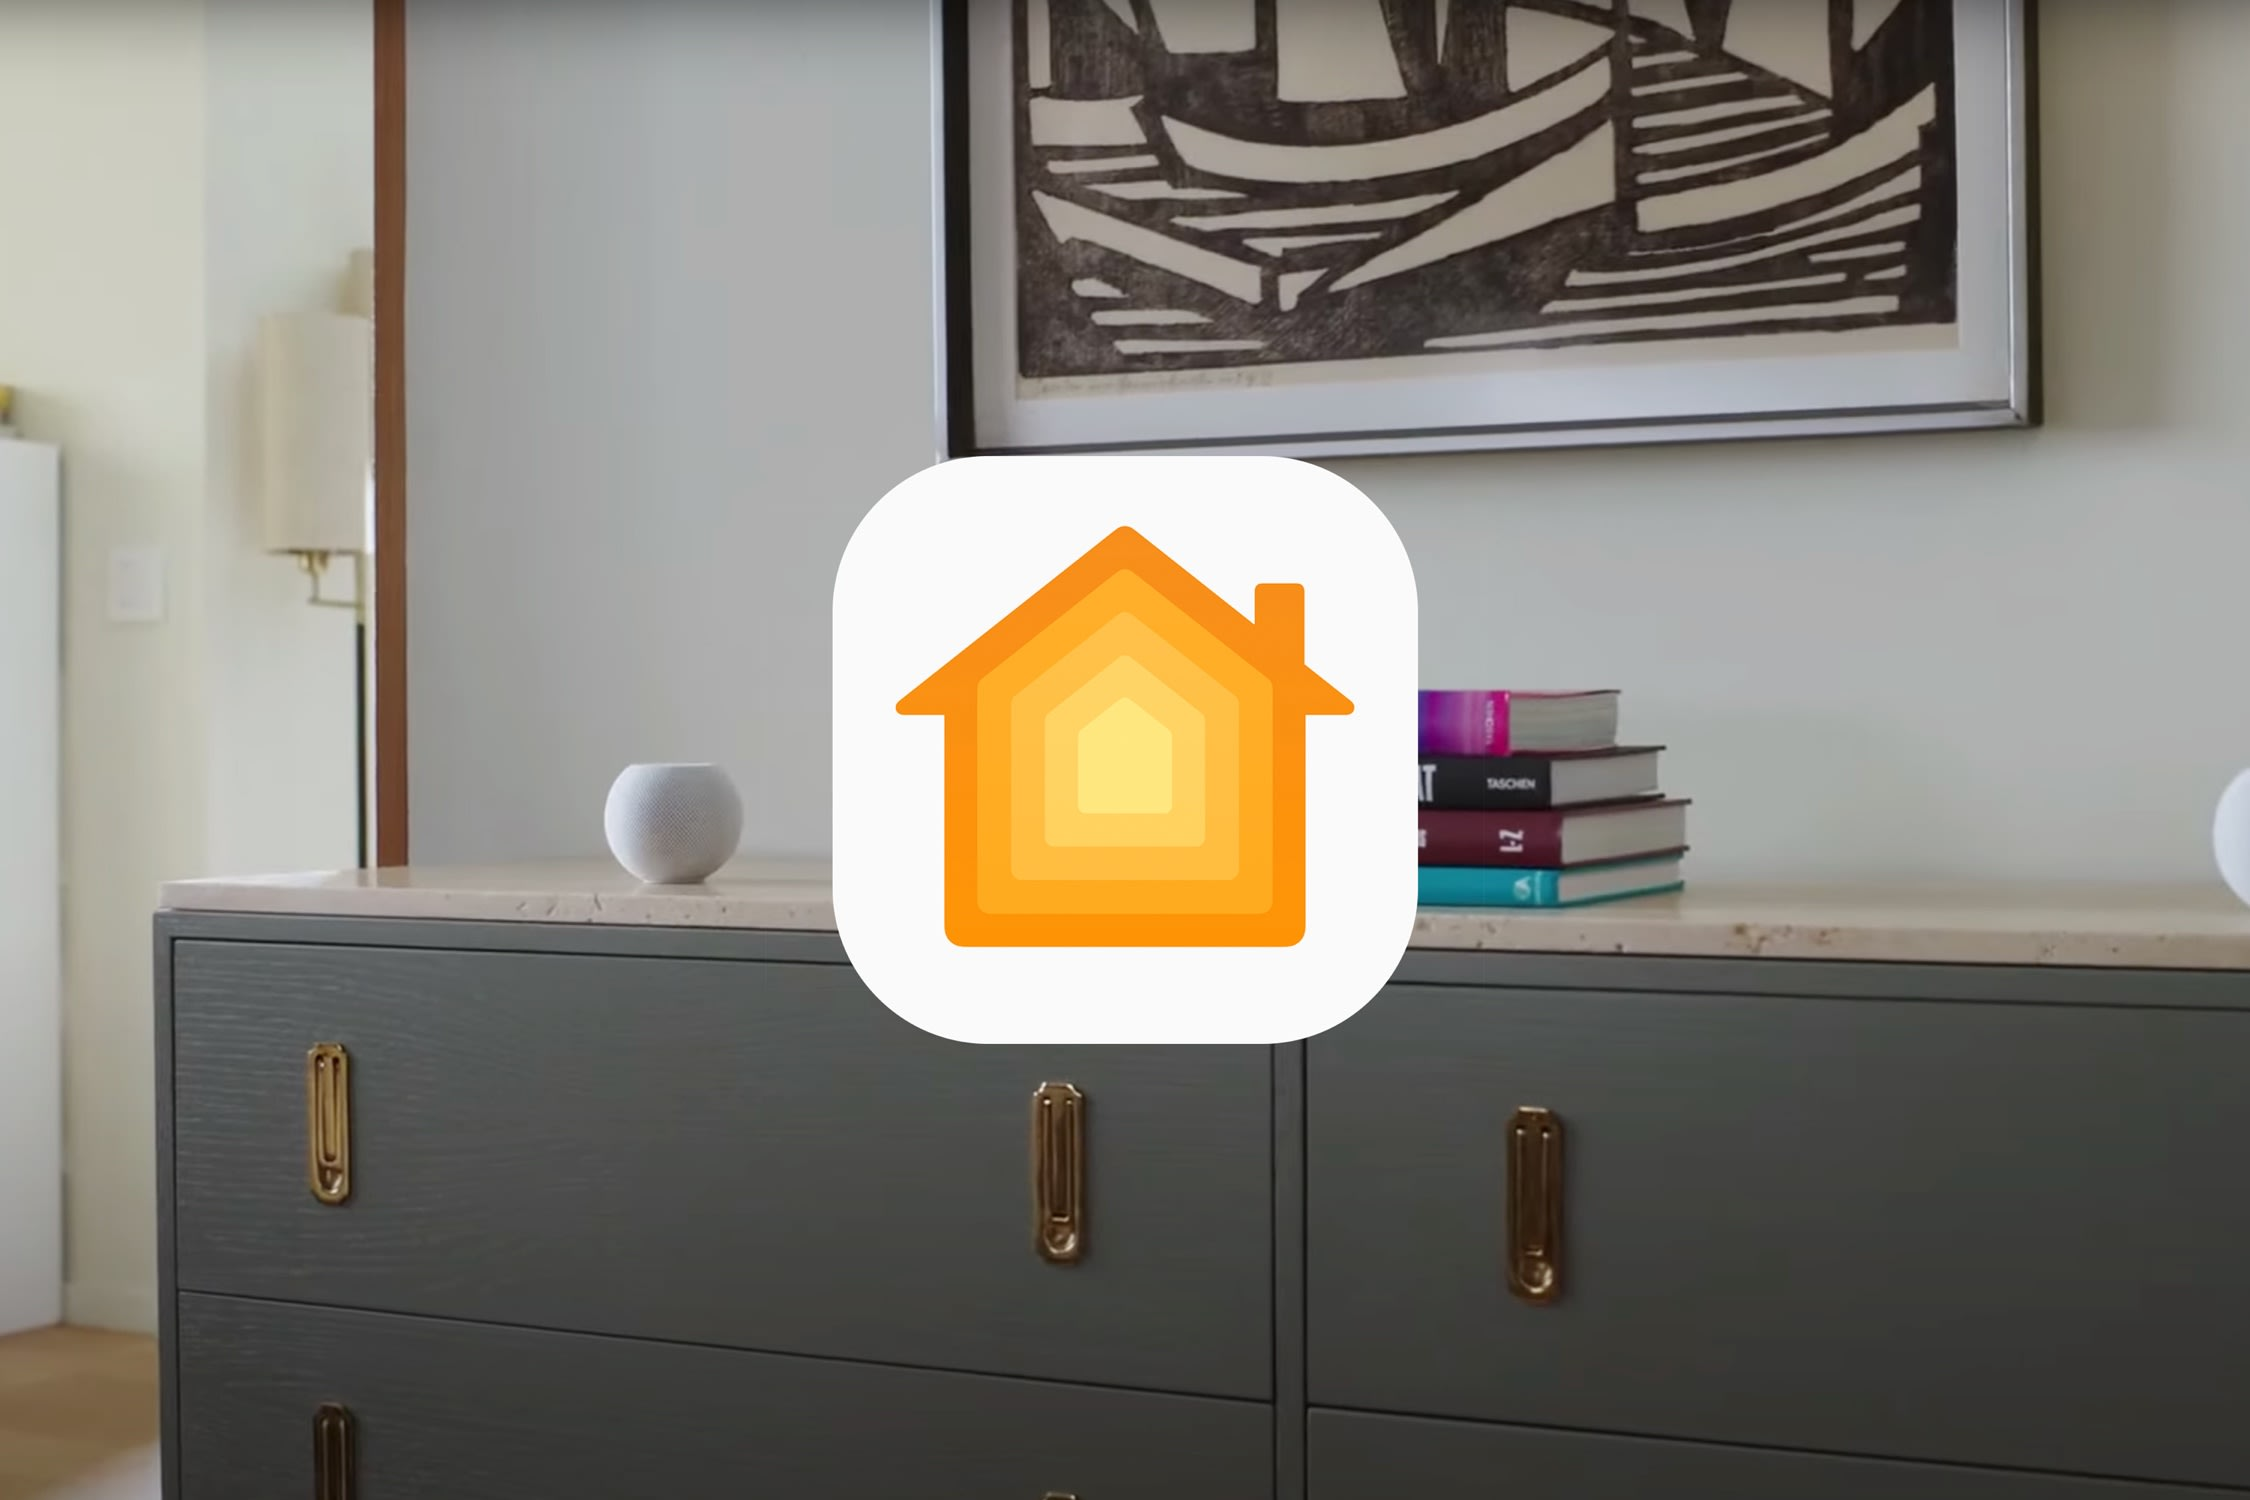 ios-14-unavailable-downgrades-and-new-homekit-adaptive-lighting-feature-20201028-1